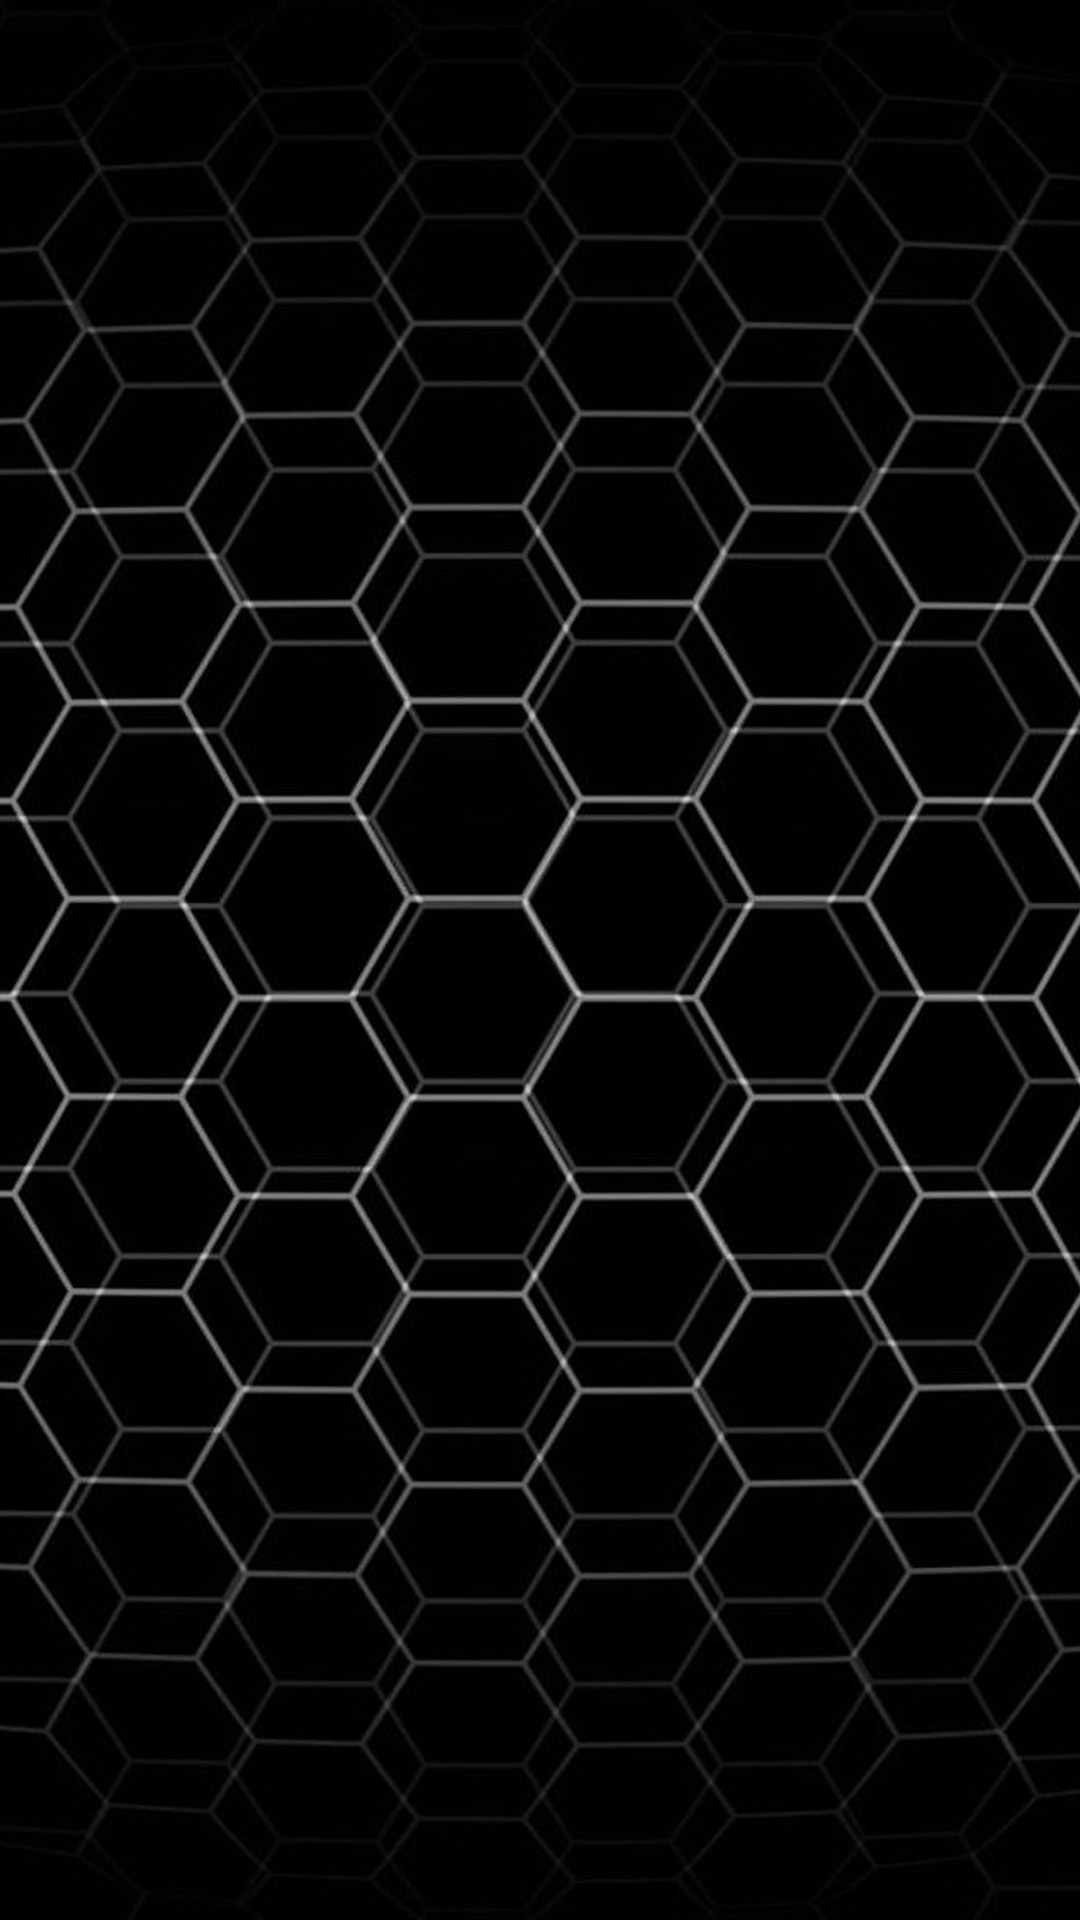 Free Wallpaper Cars And Bikes Abstract Hexagon Wallpapers For Iphone